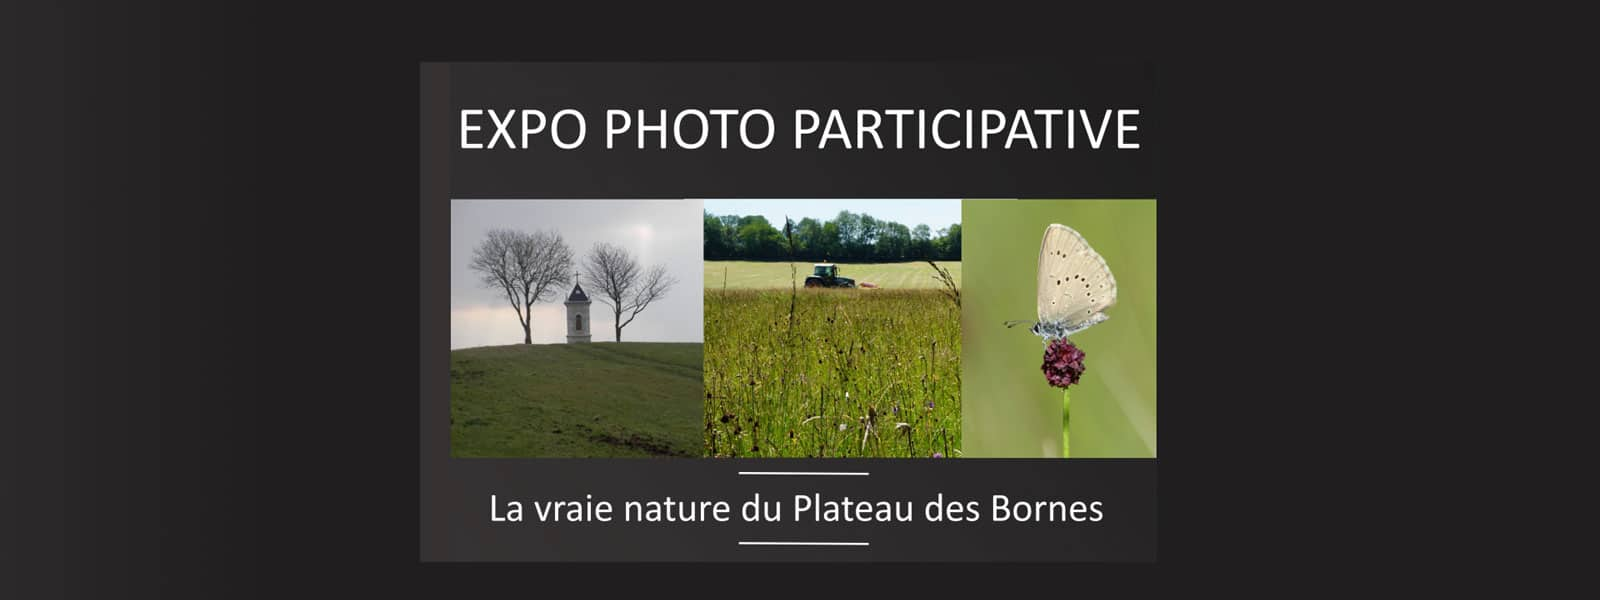 Expo-photo participative « La vraie nature du Plateau des Bornes »